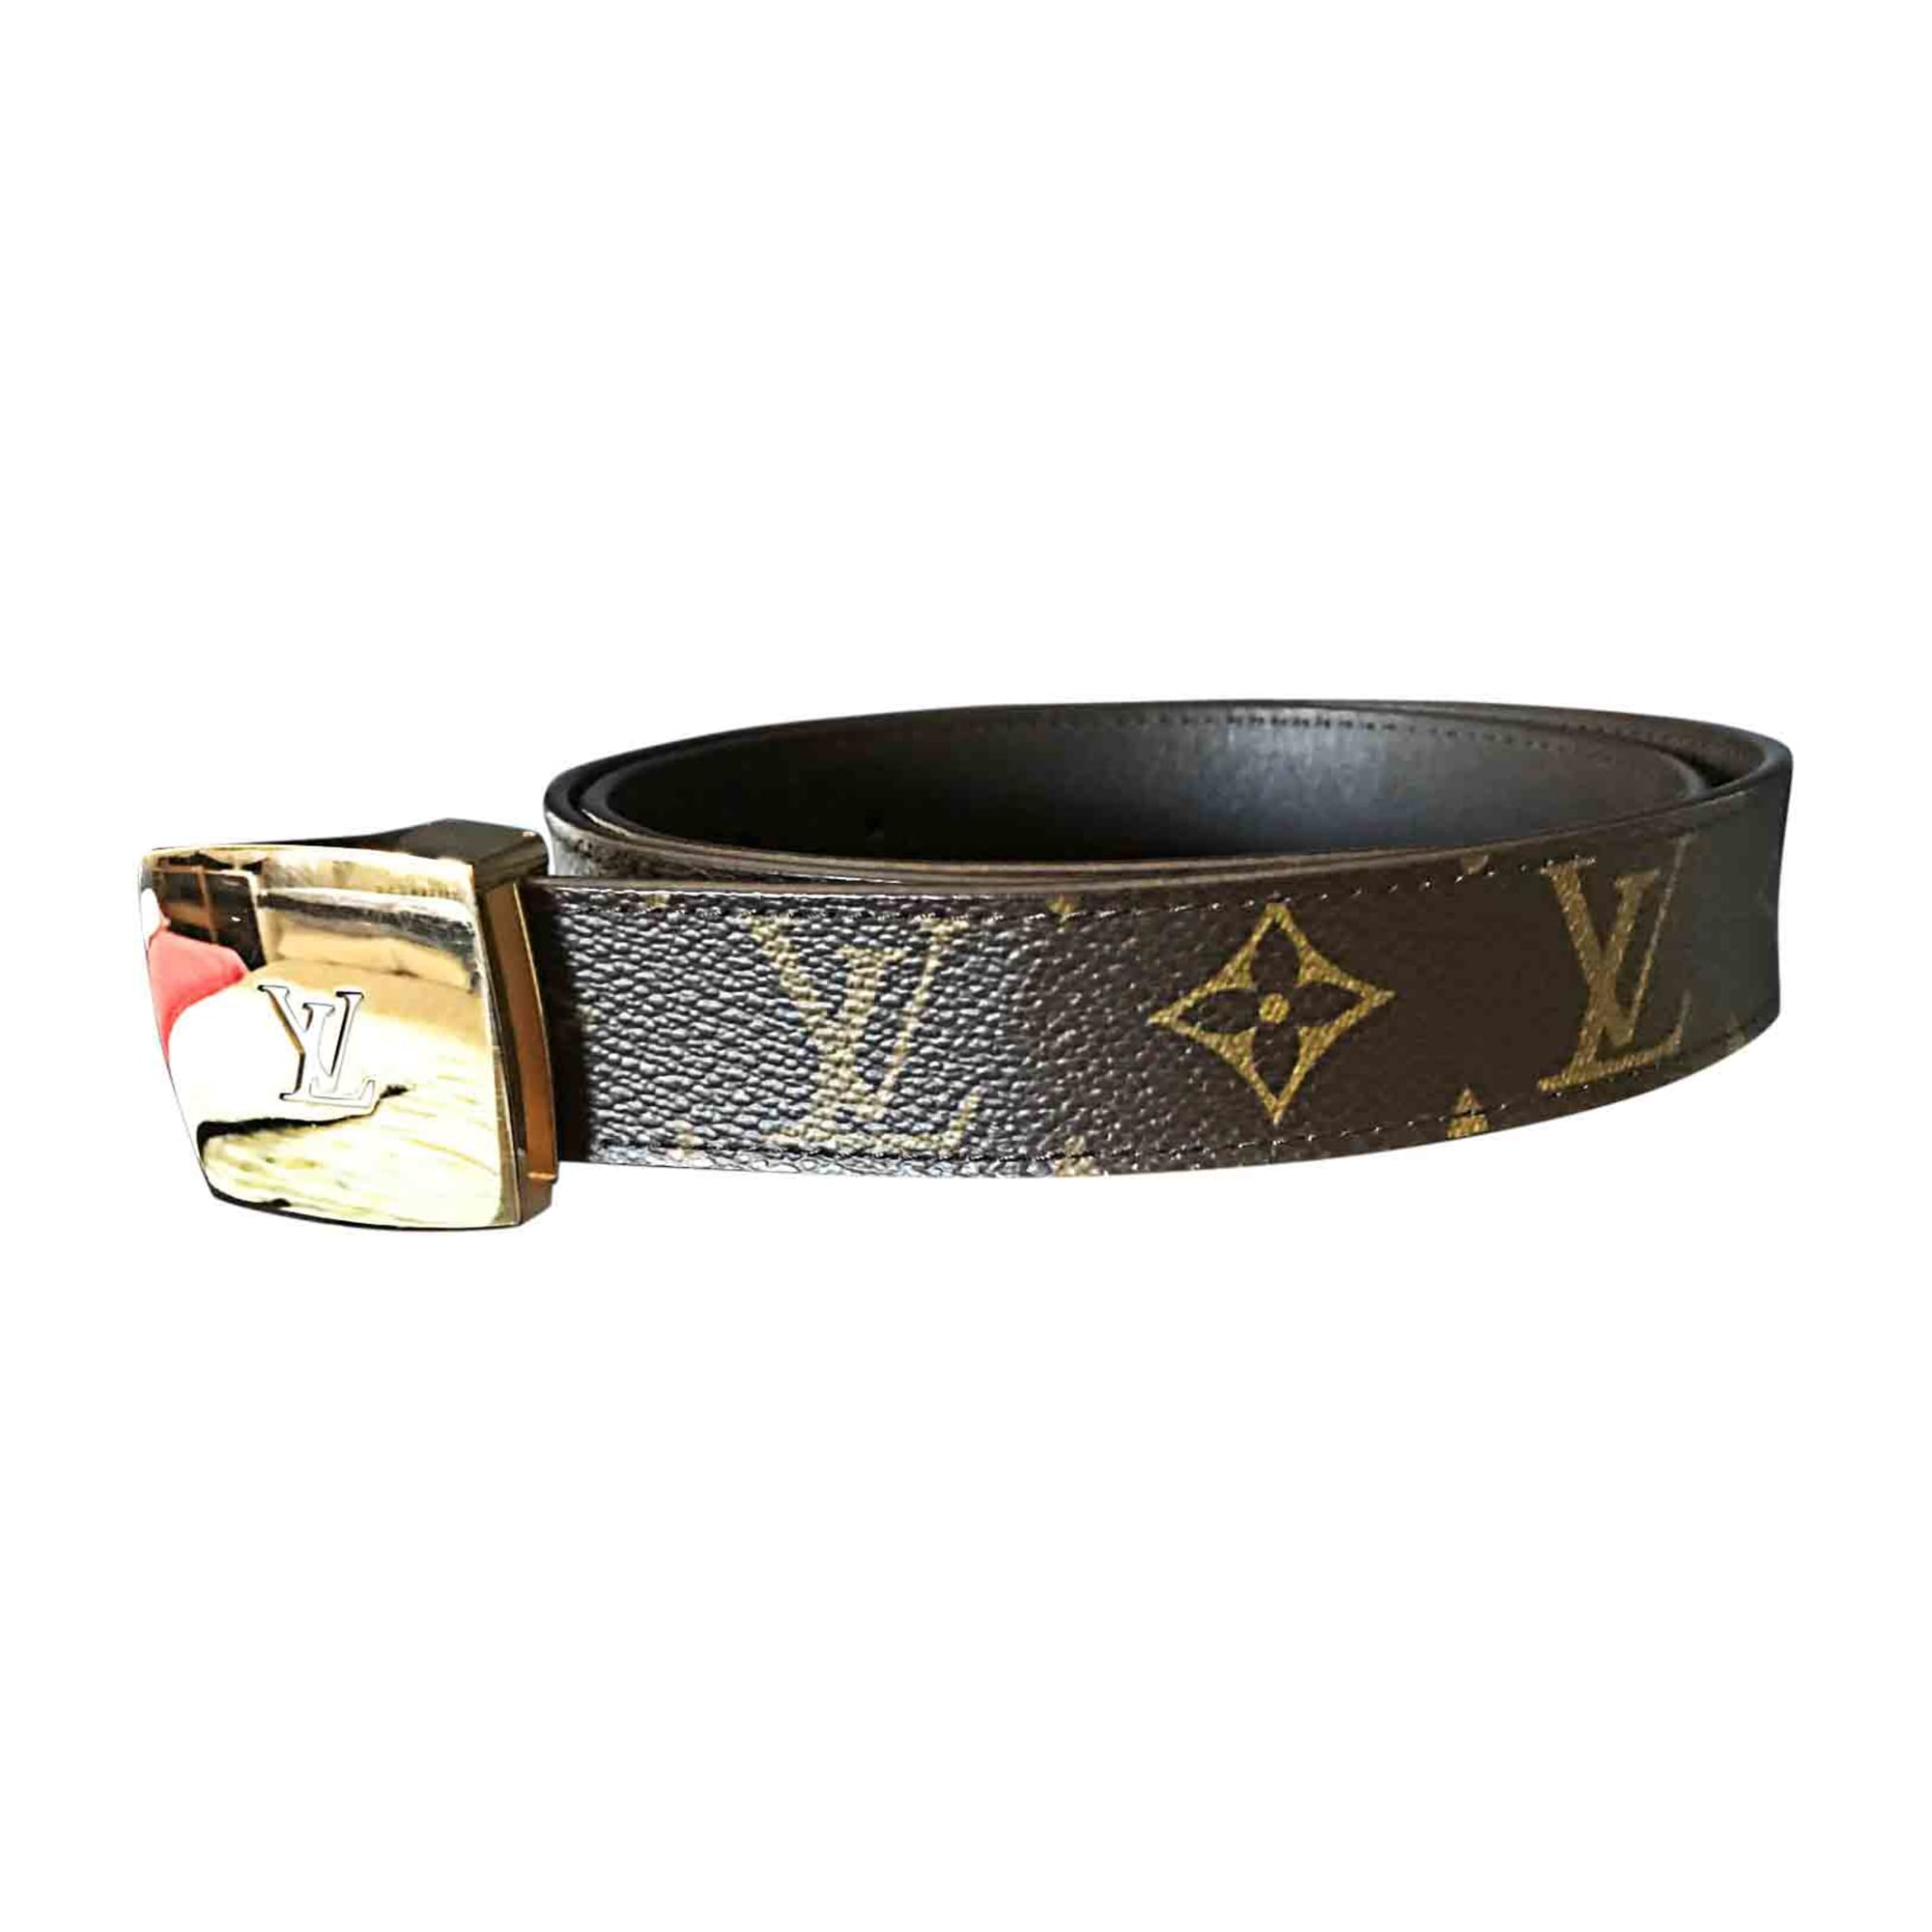 Ceinture LOUIS VUITTON 85 marron vendu par Rokvegas - 6554841 d1153c45fb2